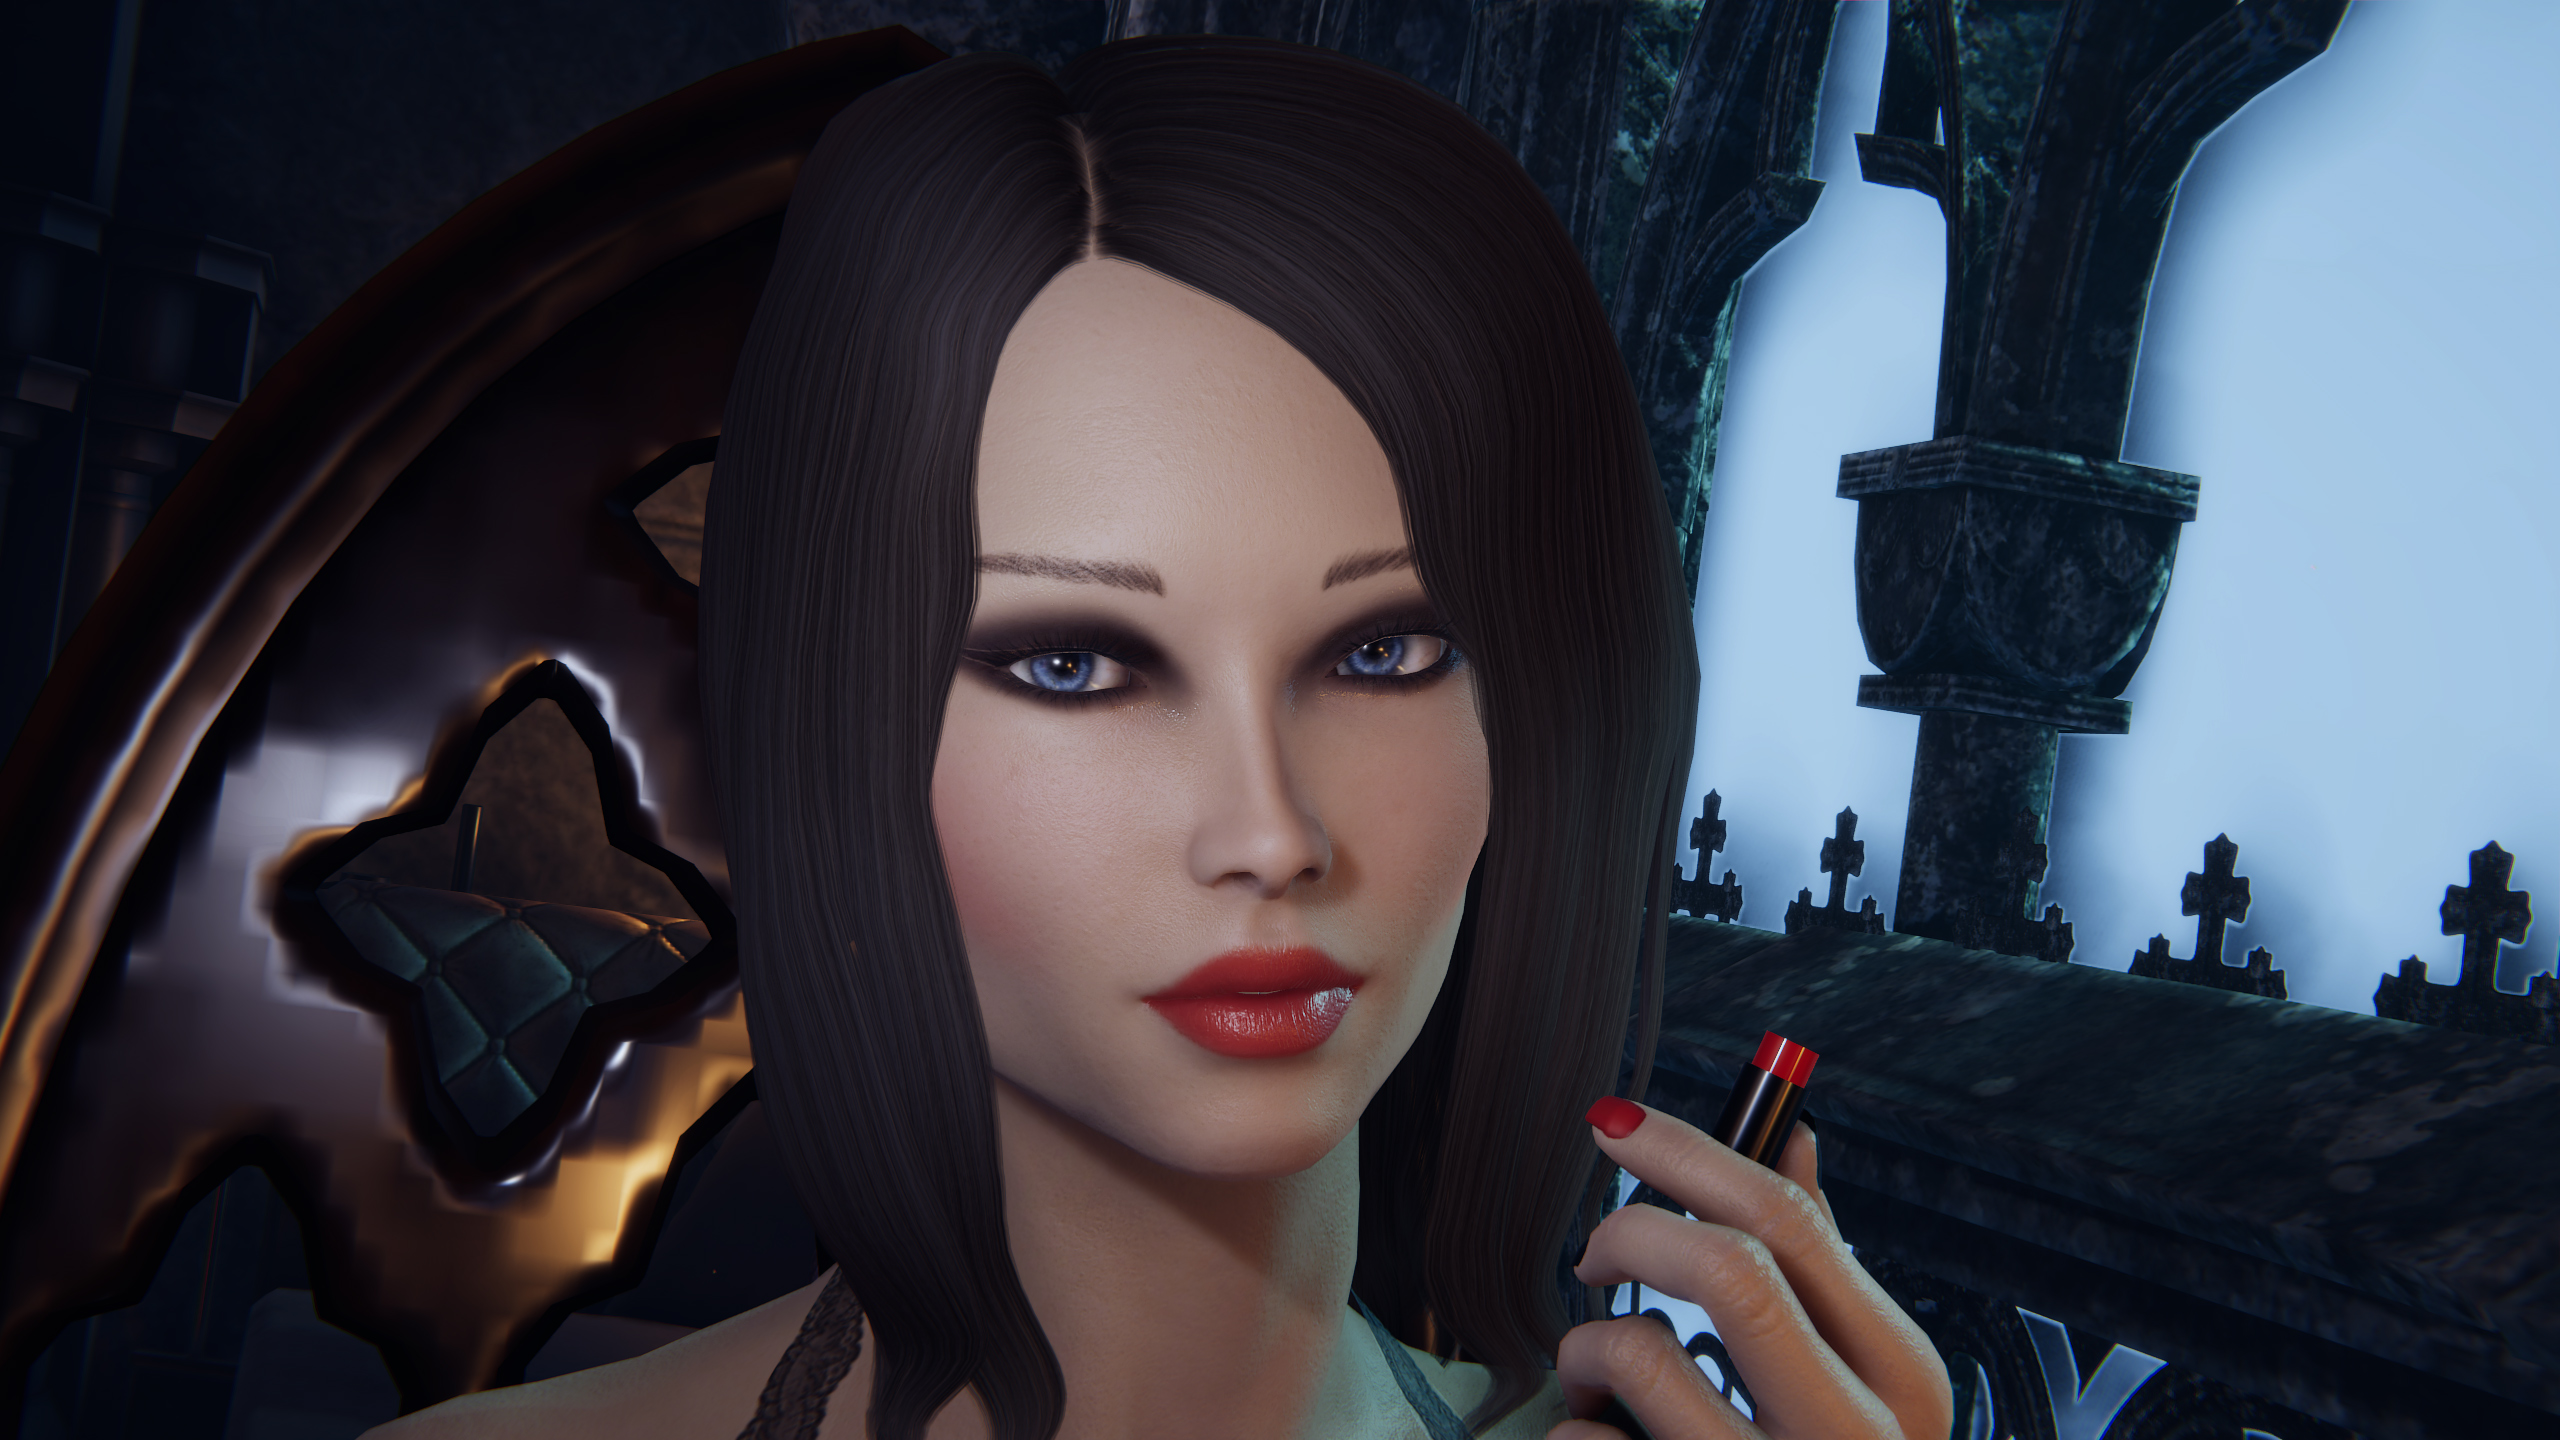 She Will Punish Them - Character Preset Guide + Install Mod